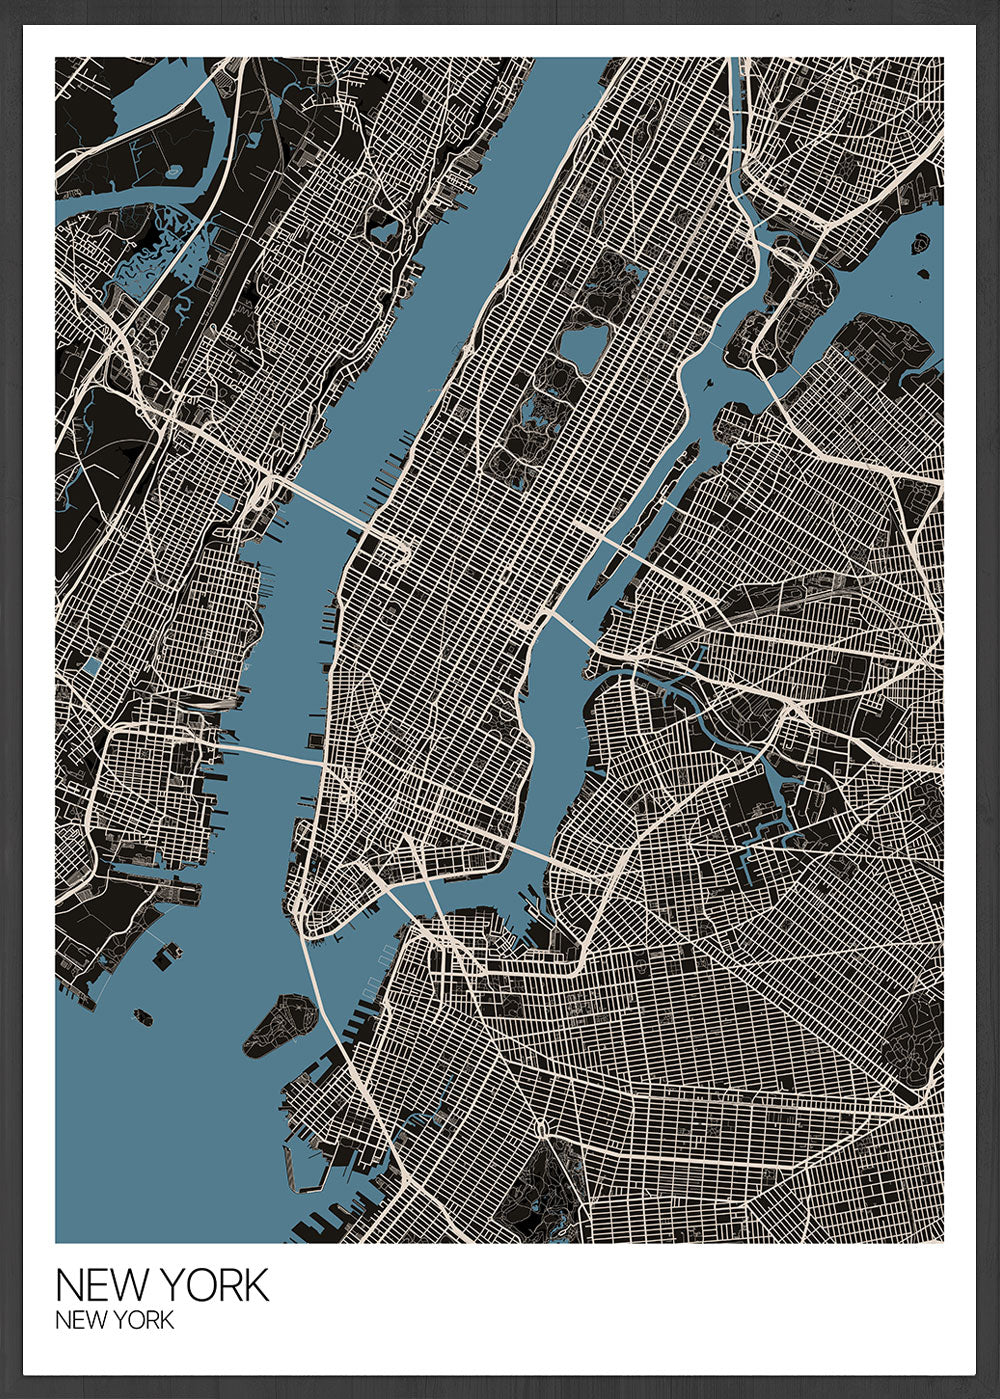 New York Graphic Map Design Print in a frame